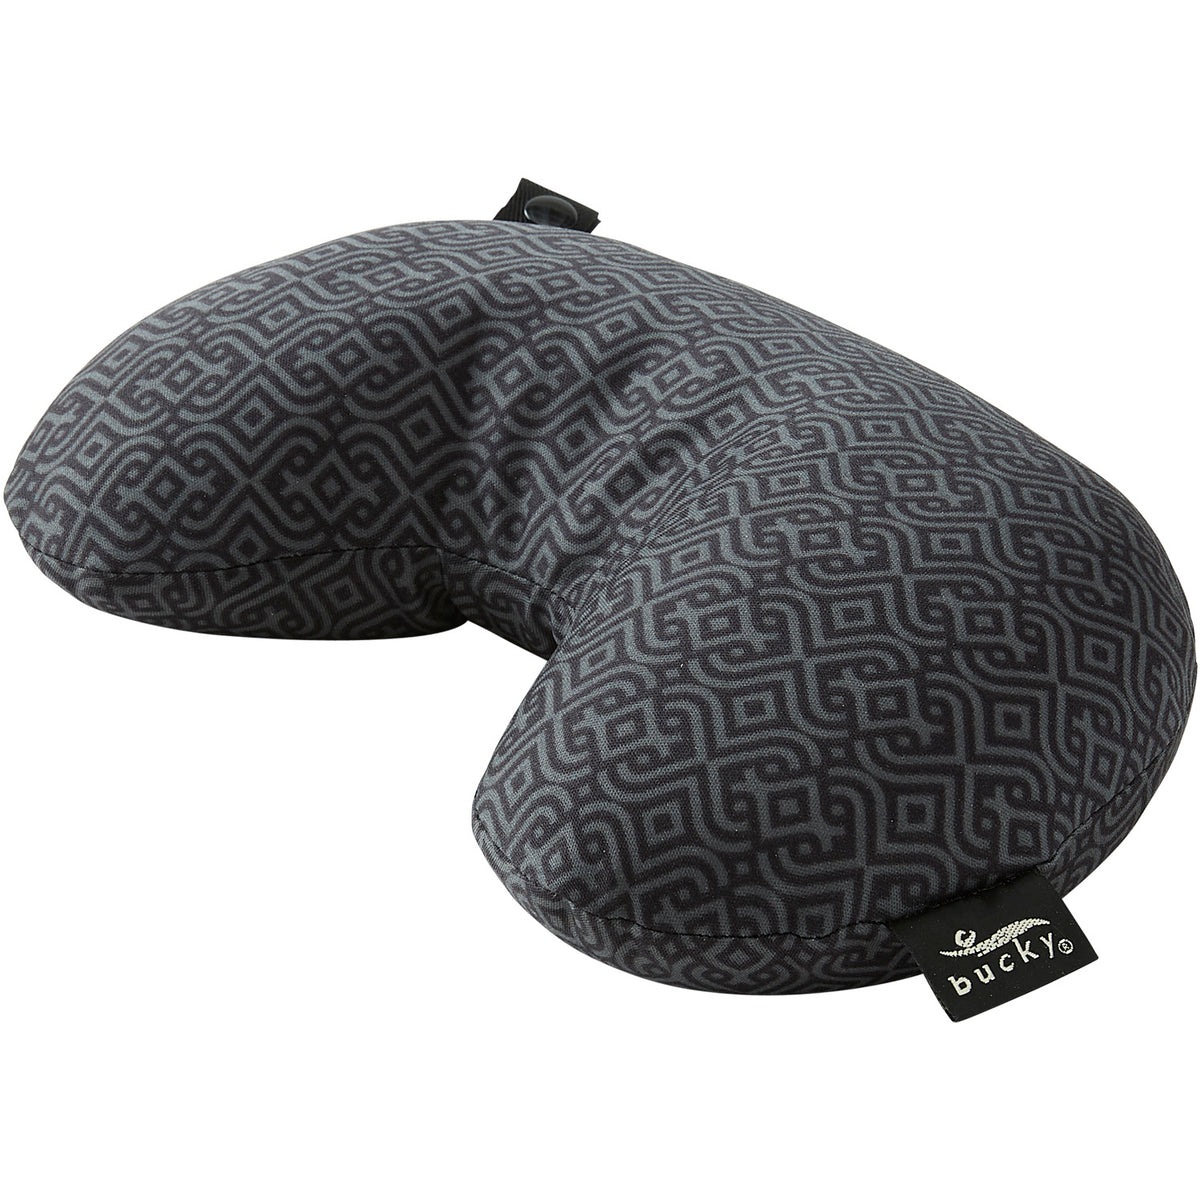 Compact Neck Pillow With Snap Go Bucky